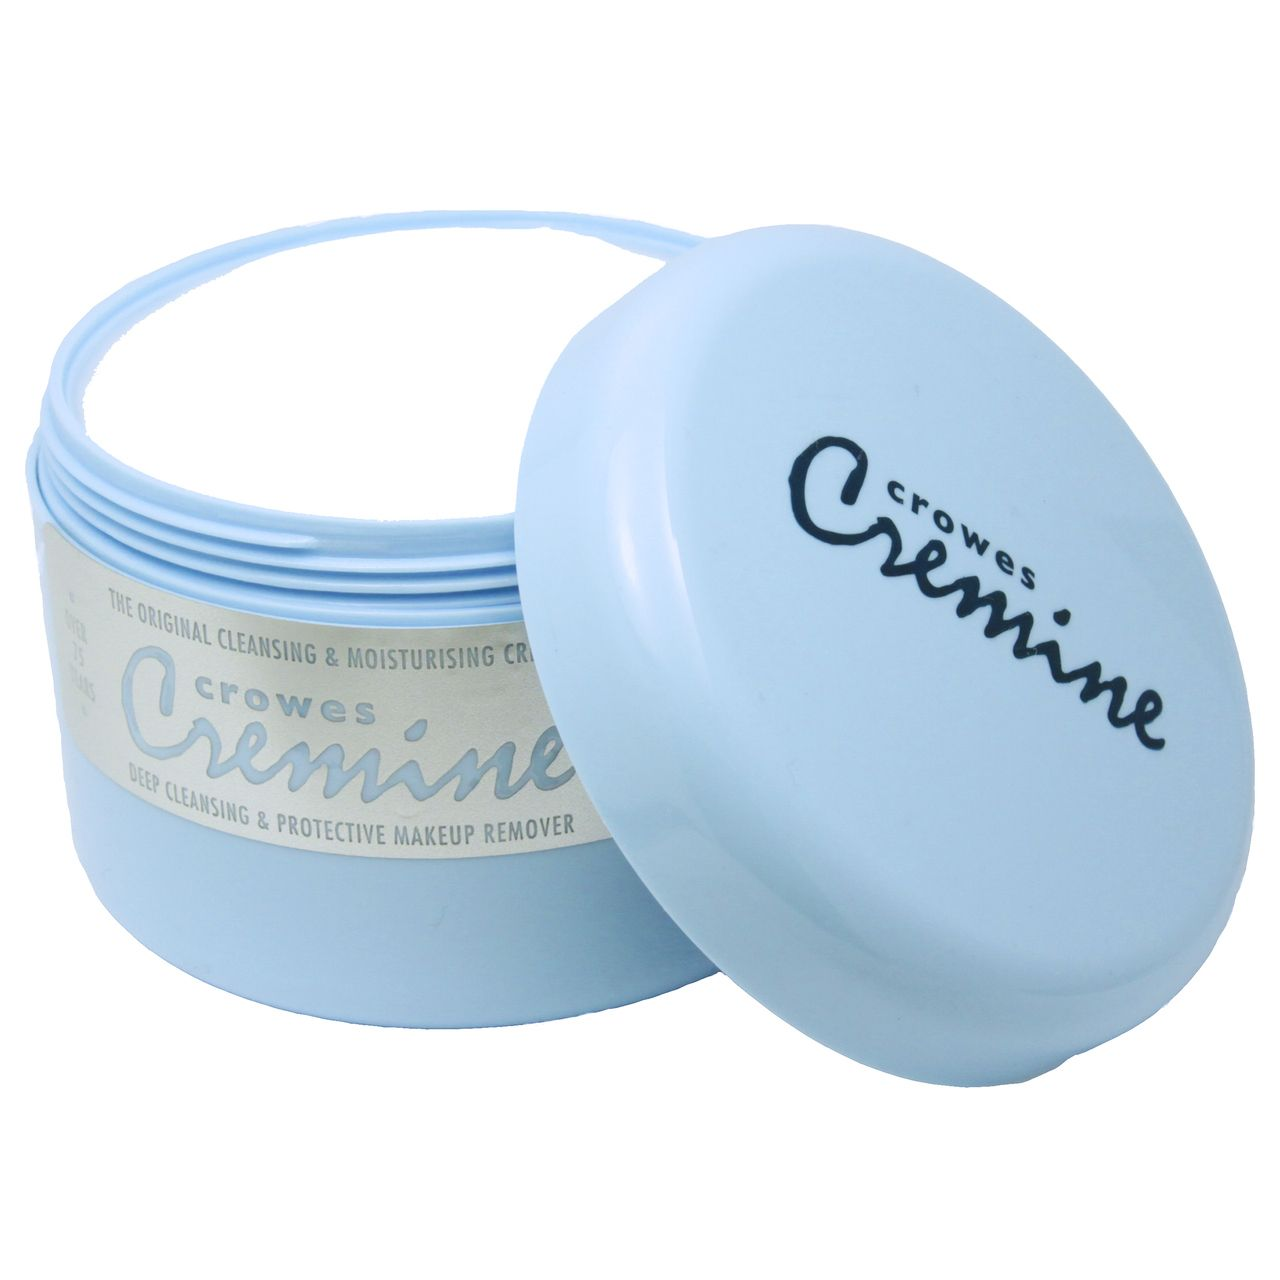 The original Crowes Cremine tub. Now available again - the customer favourite. The original cleansing cream used by the professional acting trade for over 75 years. The only effective way to remove stage makeup and a secret age defying solution for all skin types. Contains 200ml.